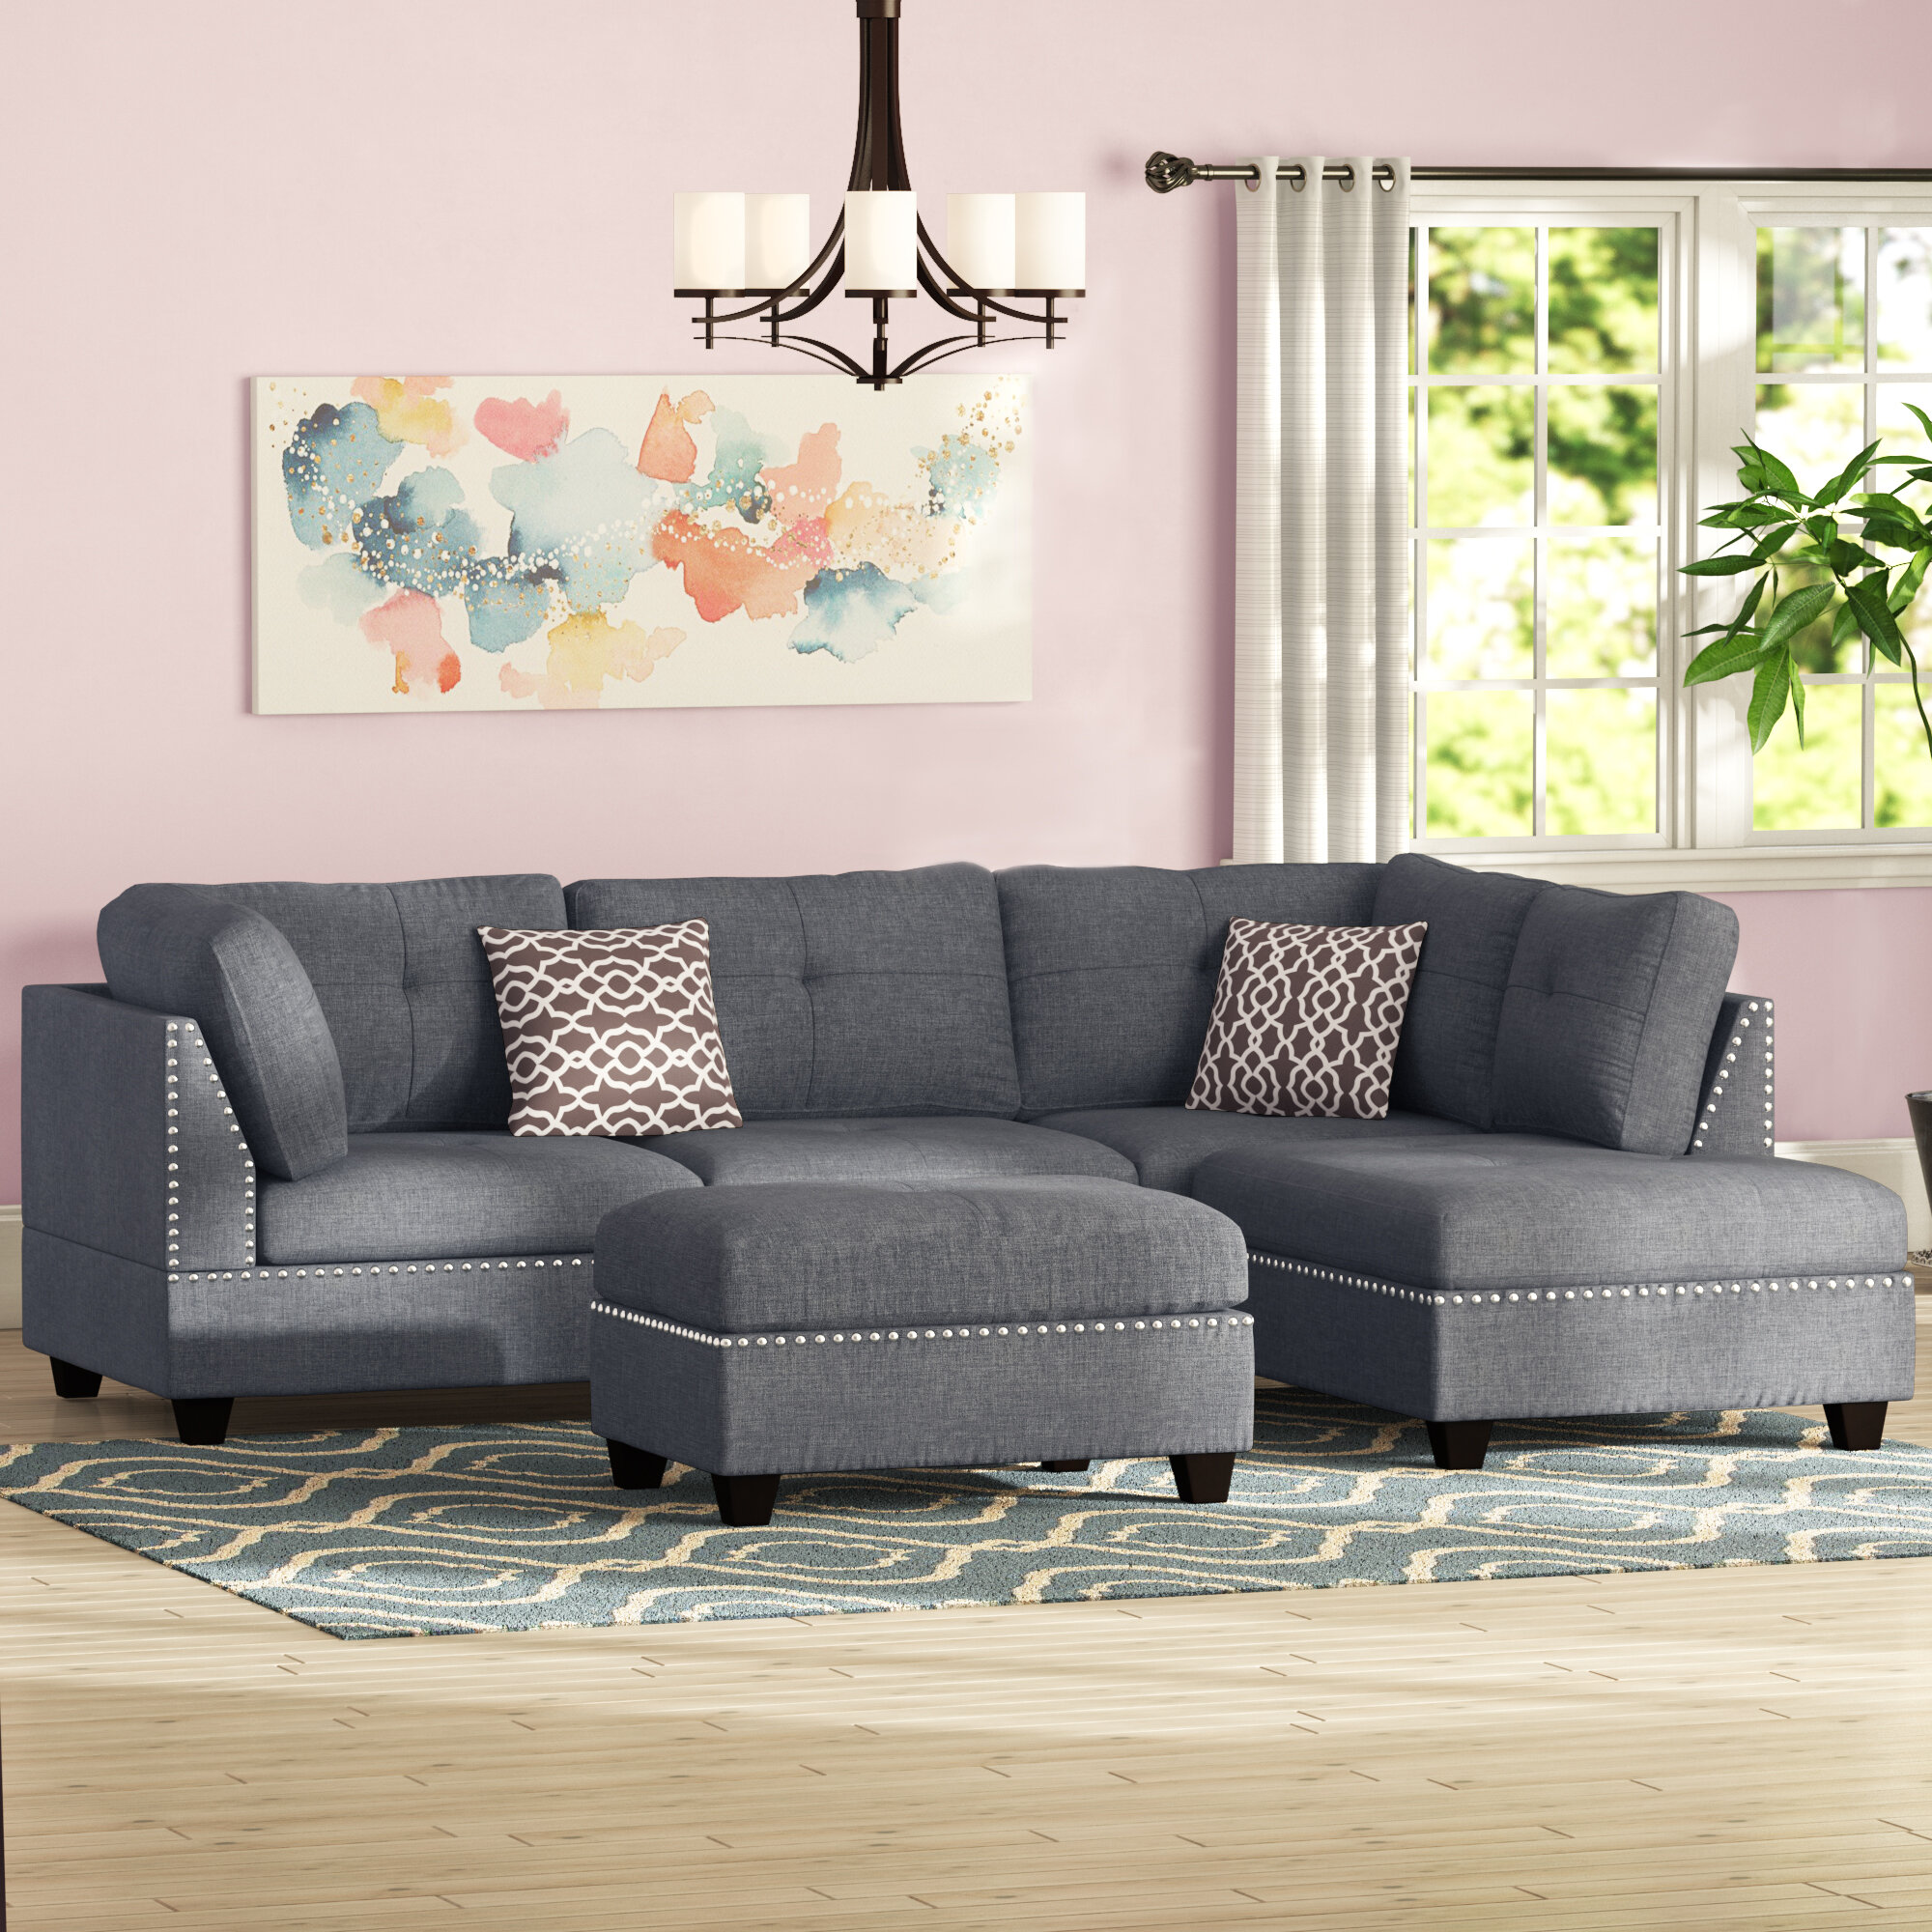 Alcott Hill Charlemont 104 Wide Reversible Sofa Chaise With Ottoman Reviews Wayfair